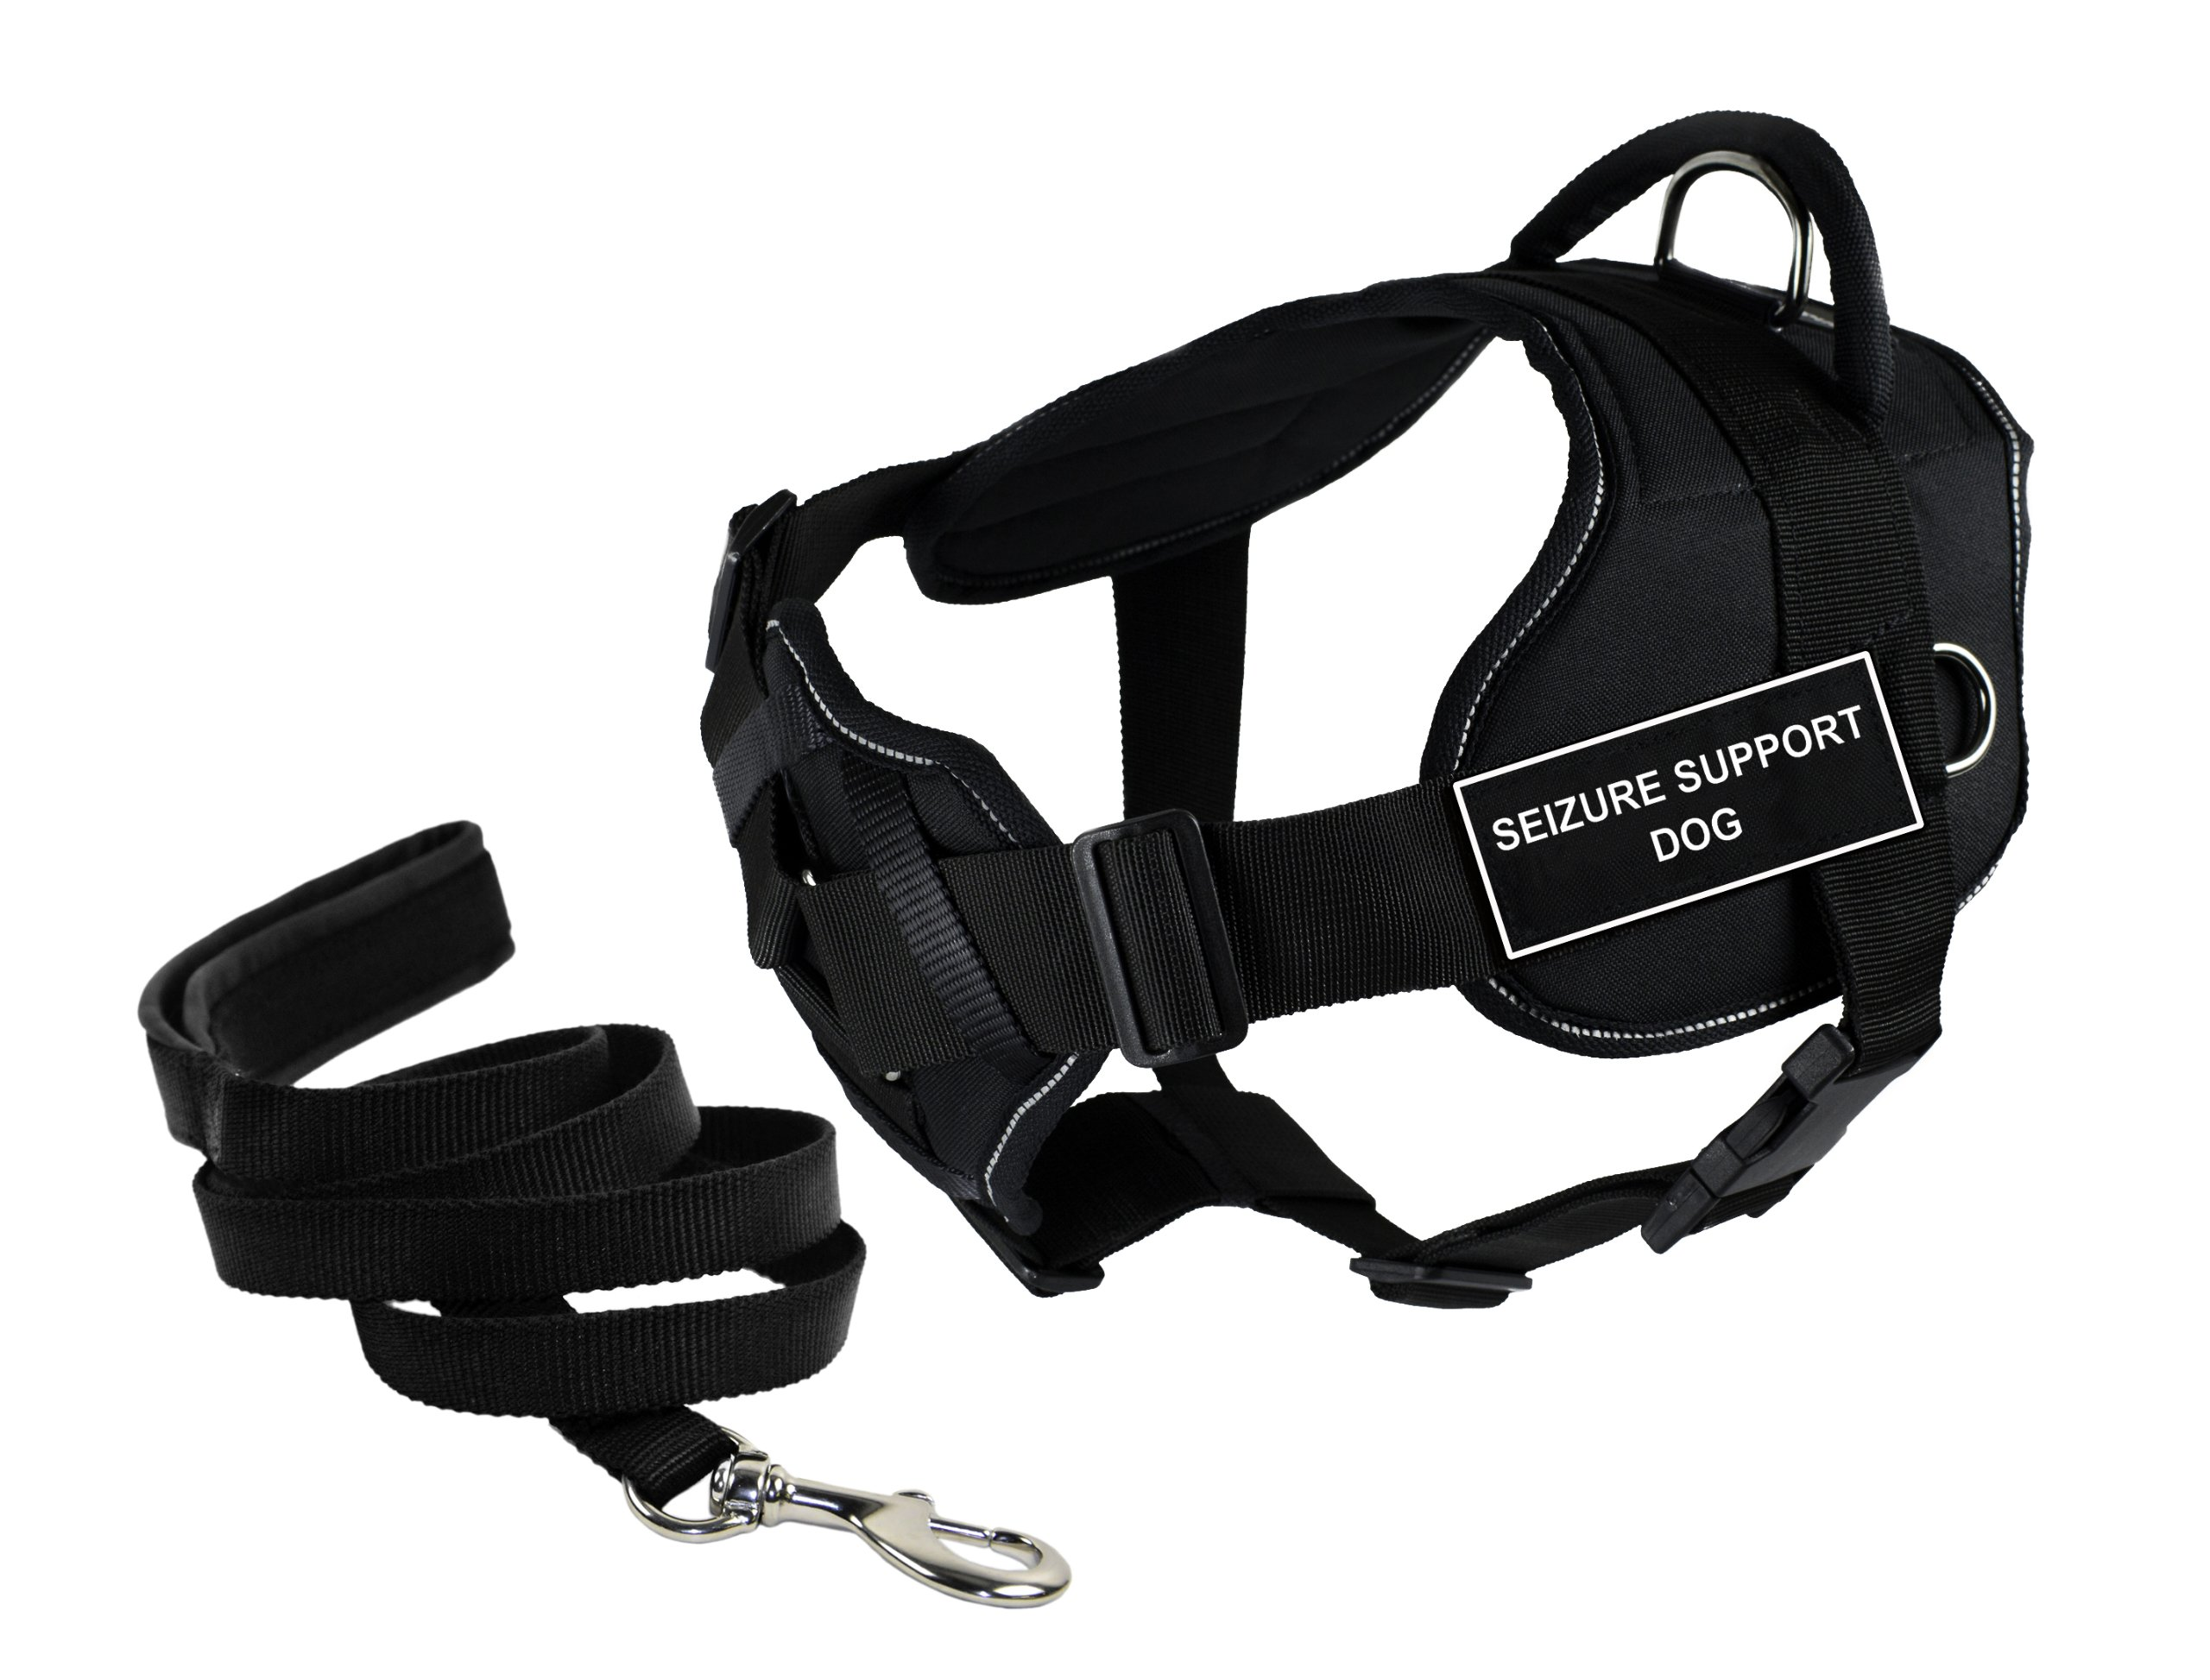 Dean & Tyler's DT Fun Chest Support ''SEIZURE SUPPORT DOG'' Harness with Reflective Trim, X-Large, and 6 ft Padded Puppy Leash.